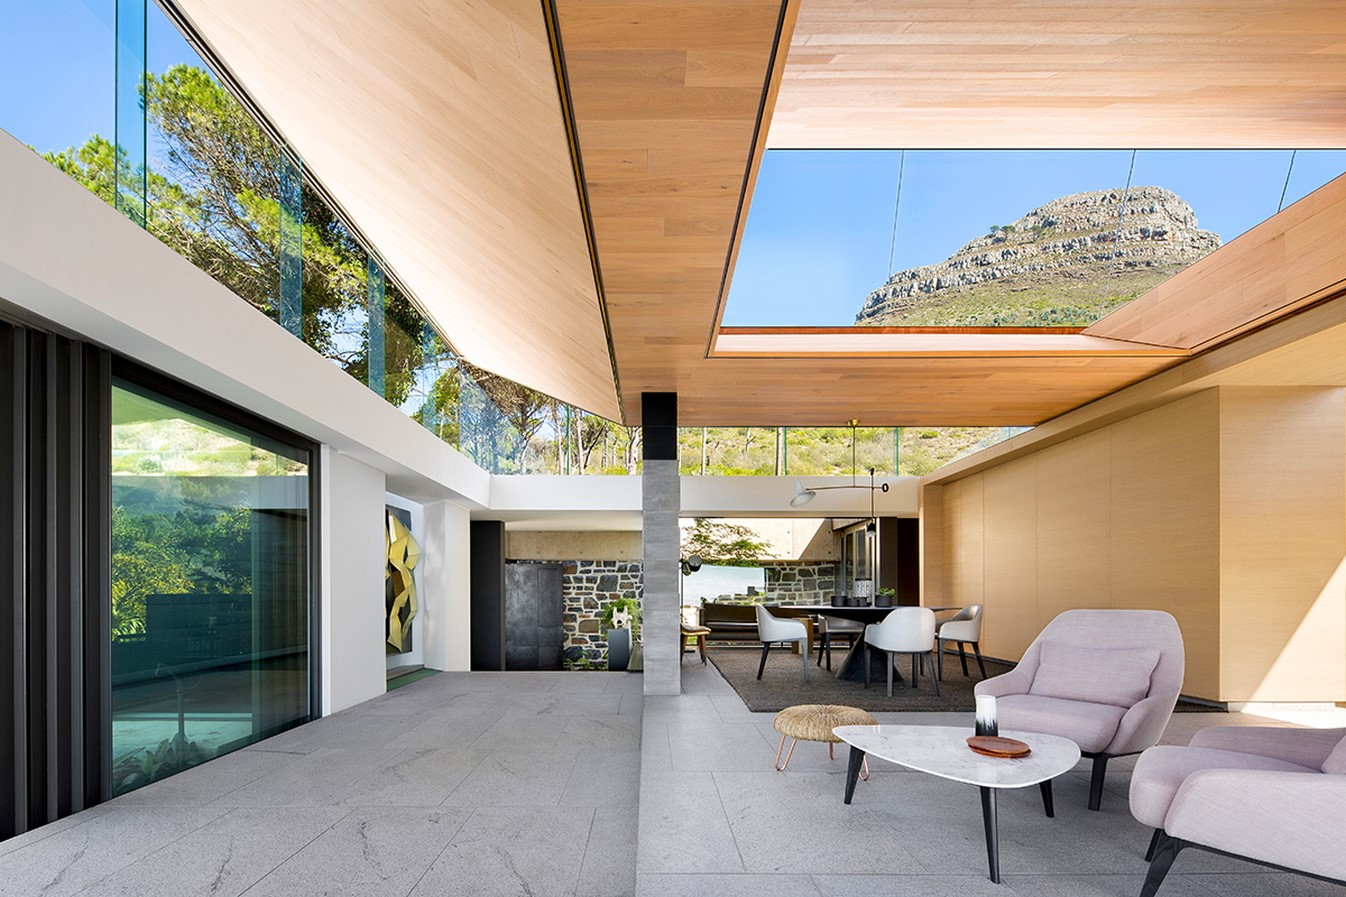 House with an inverted pyramid by SAOTA - Sheet1